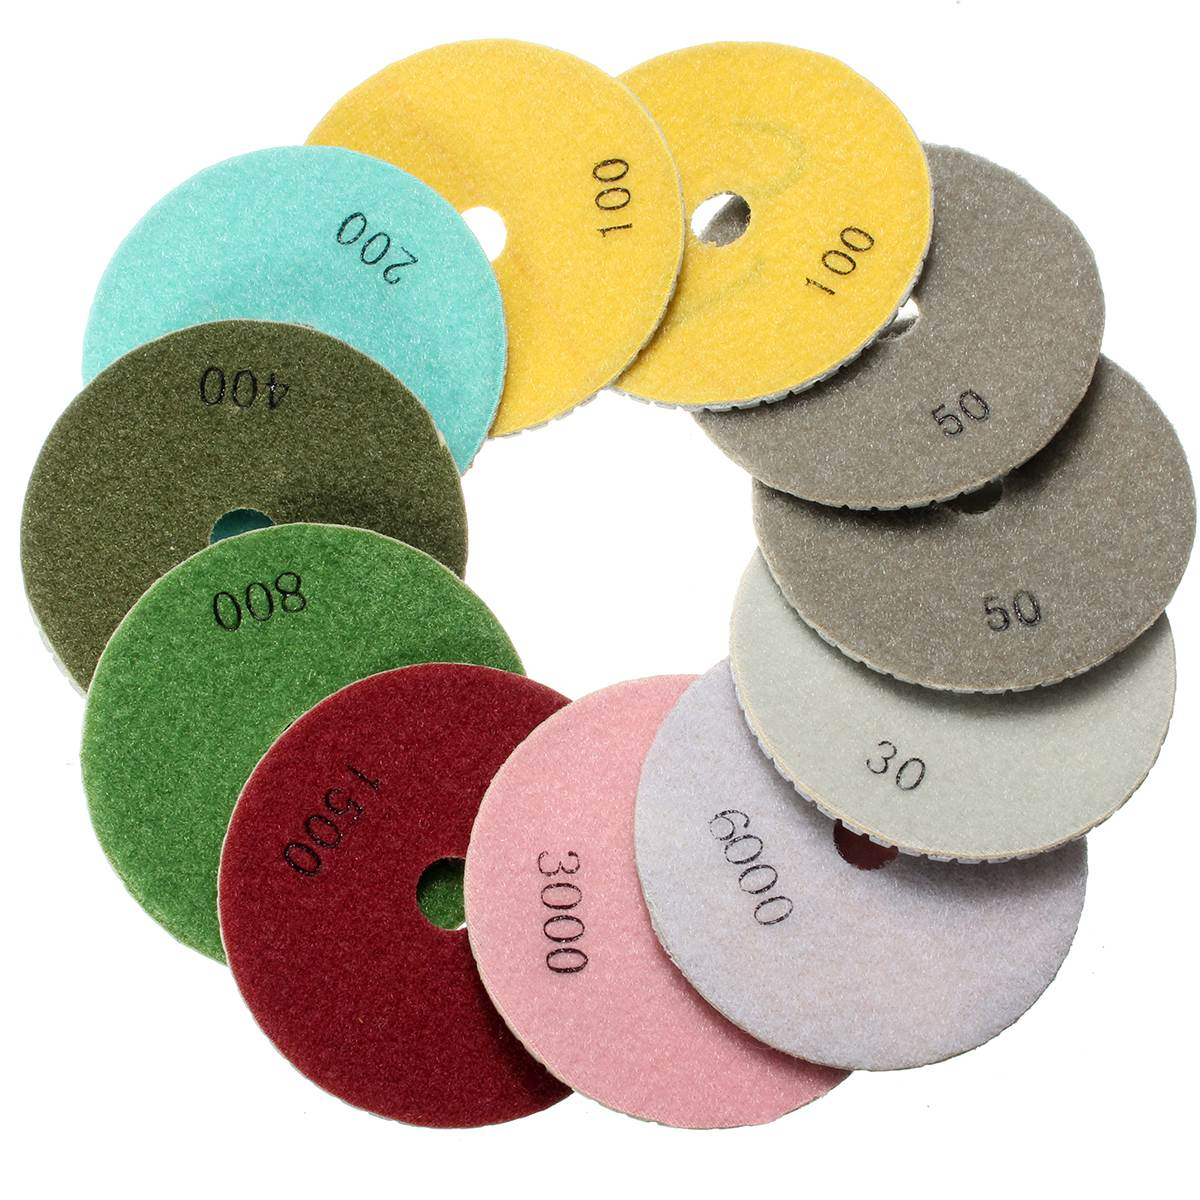 12Pcs 4 Inch 100mm Wet/Dry Diamond Polishing Pads For Granite Stone Concrete Marble Wholesale Price toolocity cpp06p1 6 inch dry 5 step diamond polishing pads for concrete pos 1